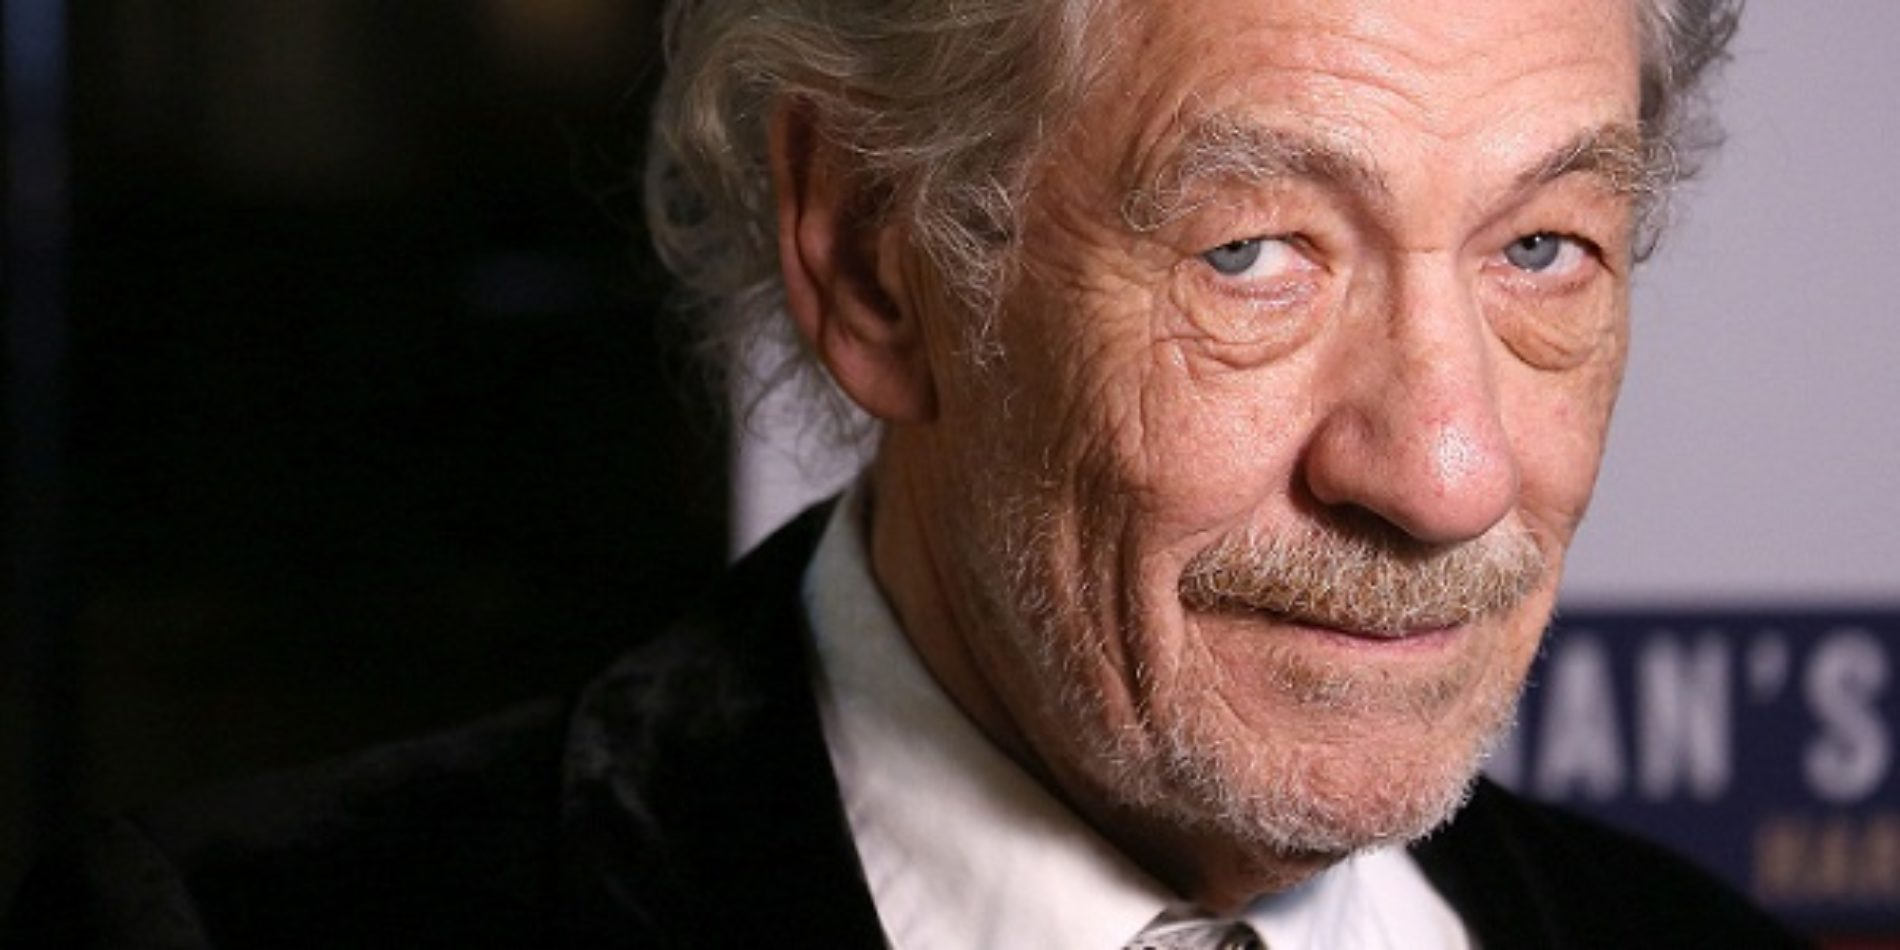 'I Regret Not Coming Out Much Earlier.' – Ian McKellen Says